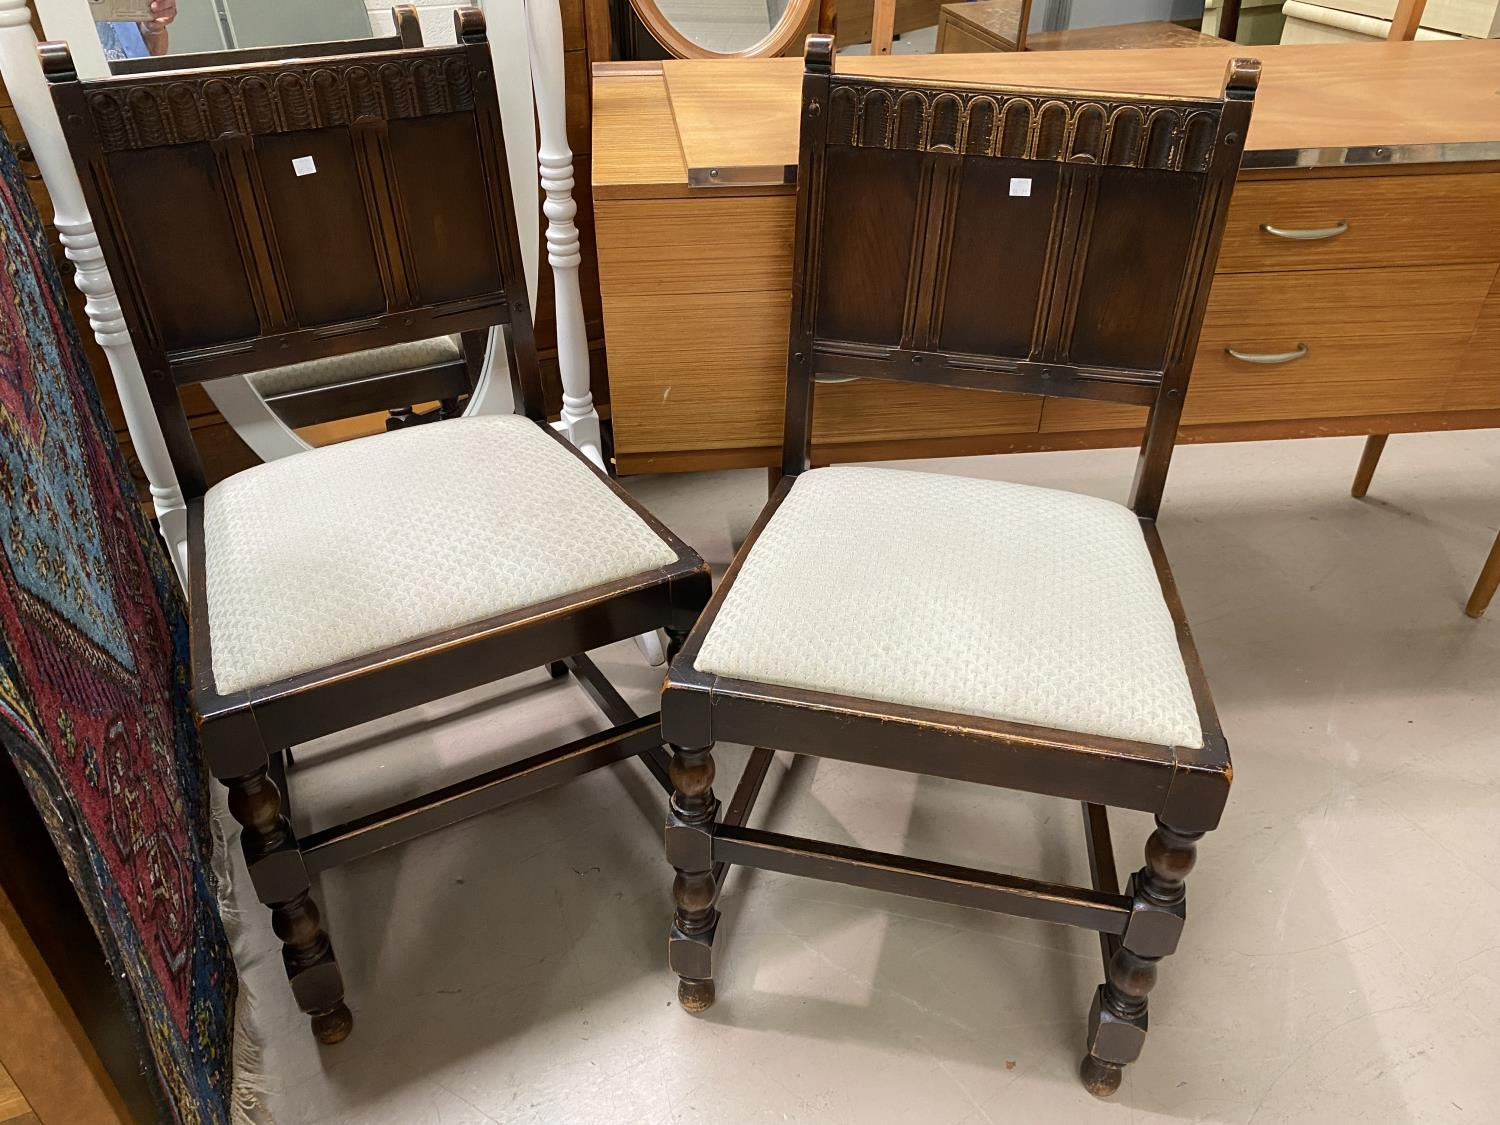 An Ercol traditional style dining suite comprising sideboard, 145 cm, 4 chairs with panelled backs - Image 3 of 3